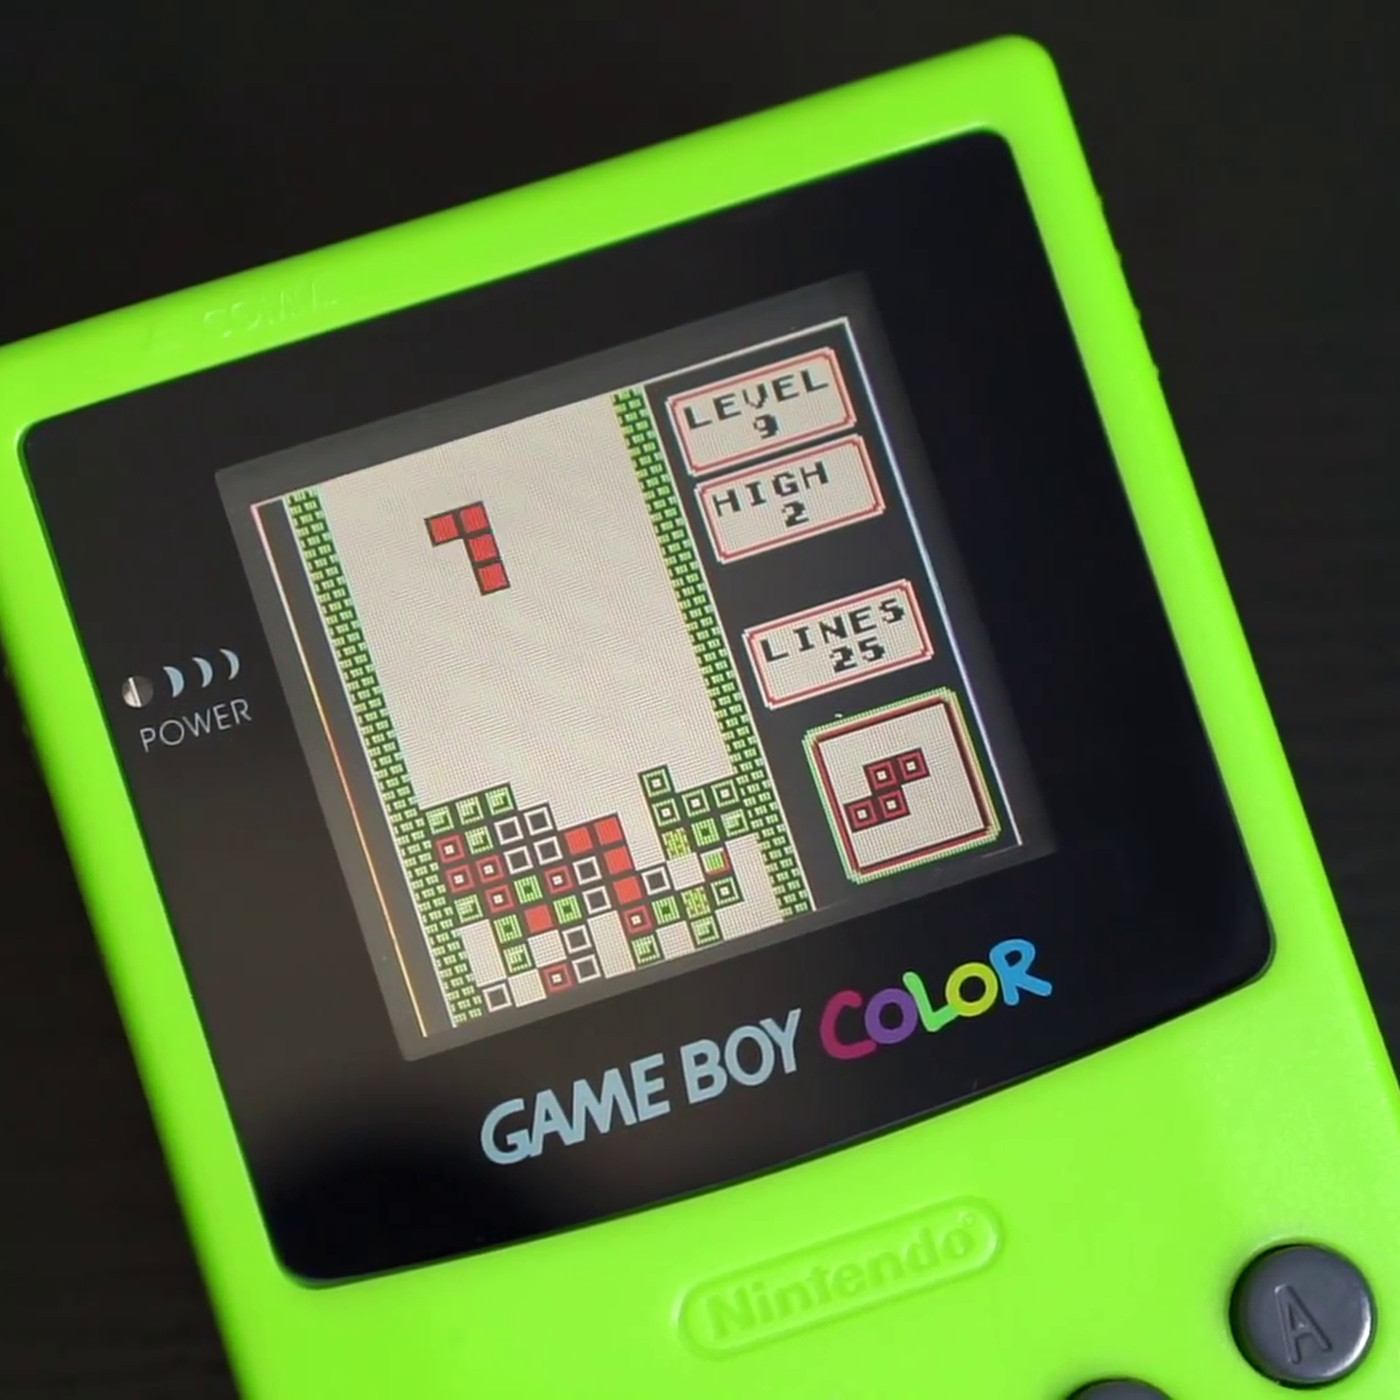 Game Boy Color Finally Modded With Backlight And It Looks